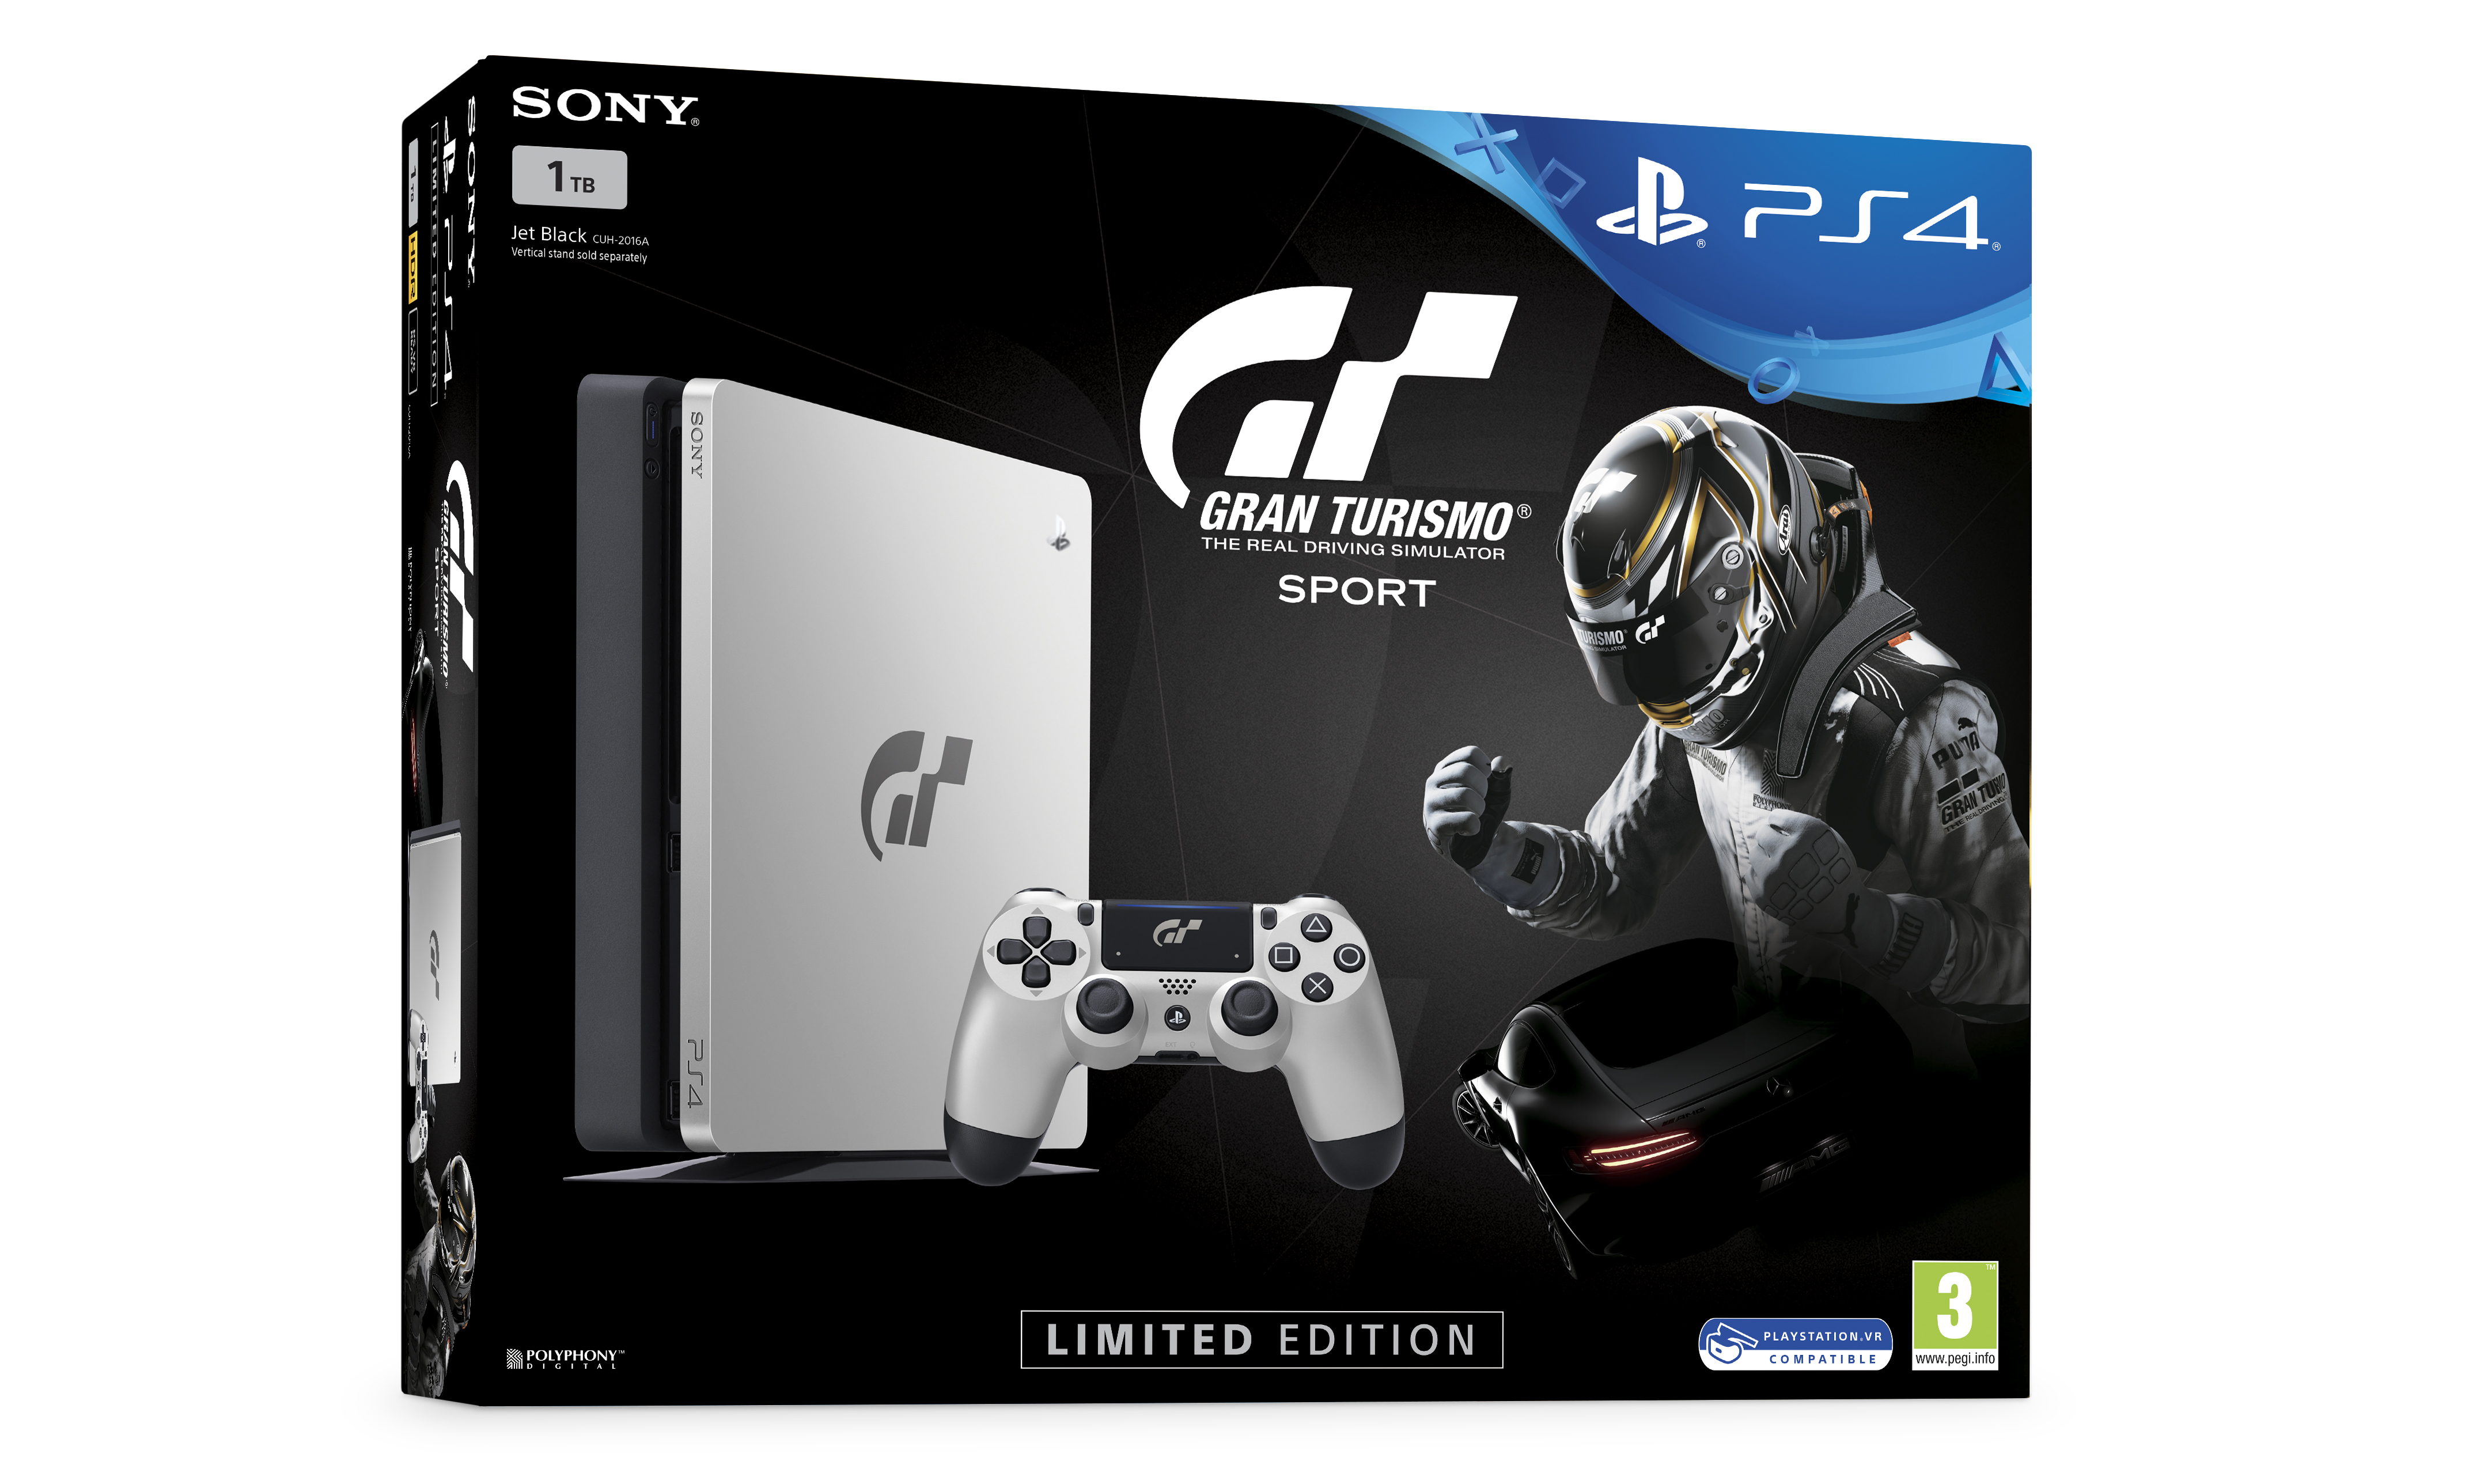 Ps4 Brotherhood Official Ps Thread Dirty Shiv Edition Playstation Network Card Psn Singapore Credit 50 Sgd Archive Page 21 Bodybuildingcom Forums